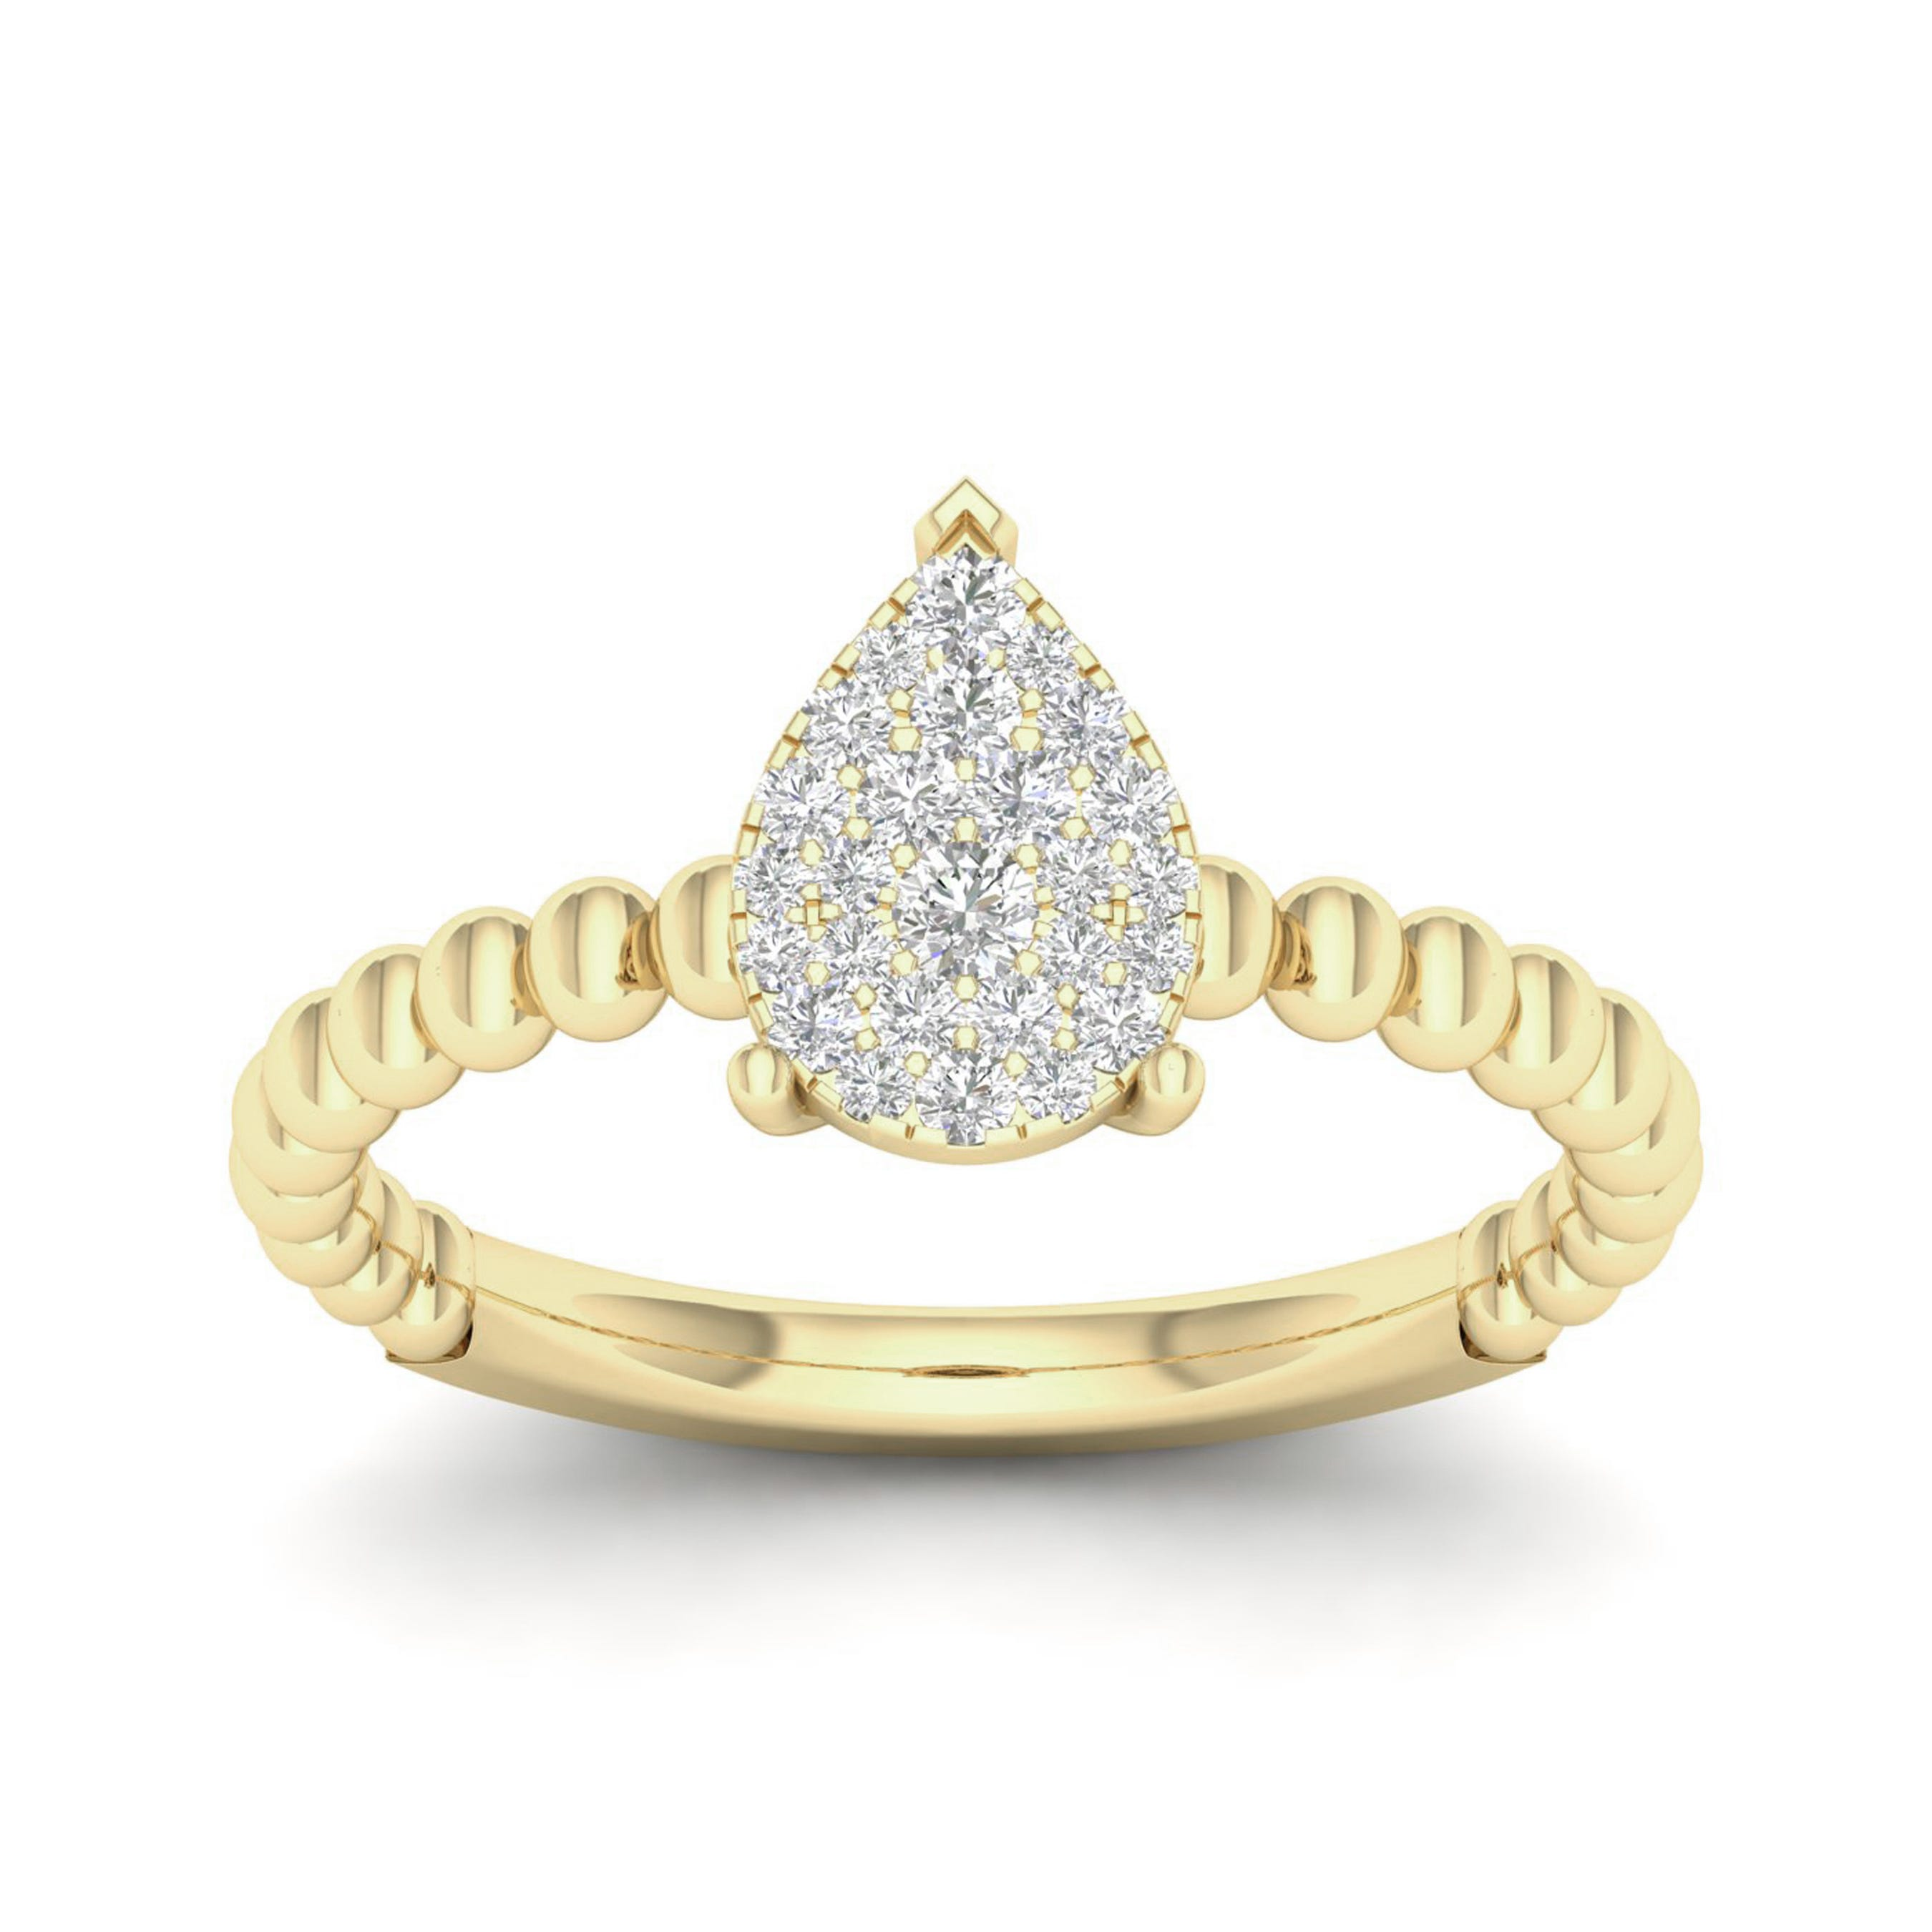 Diamond 1/5ctw. Pear Shape Cluster Ring in 10k Yellow Gold